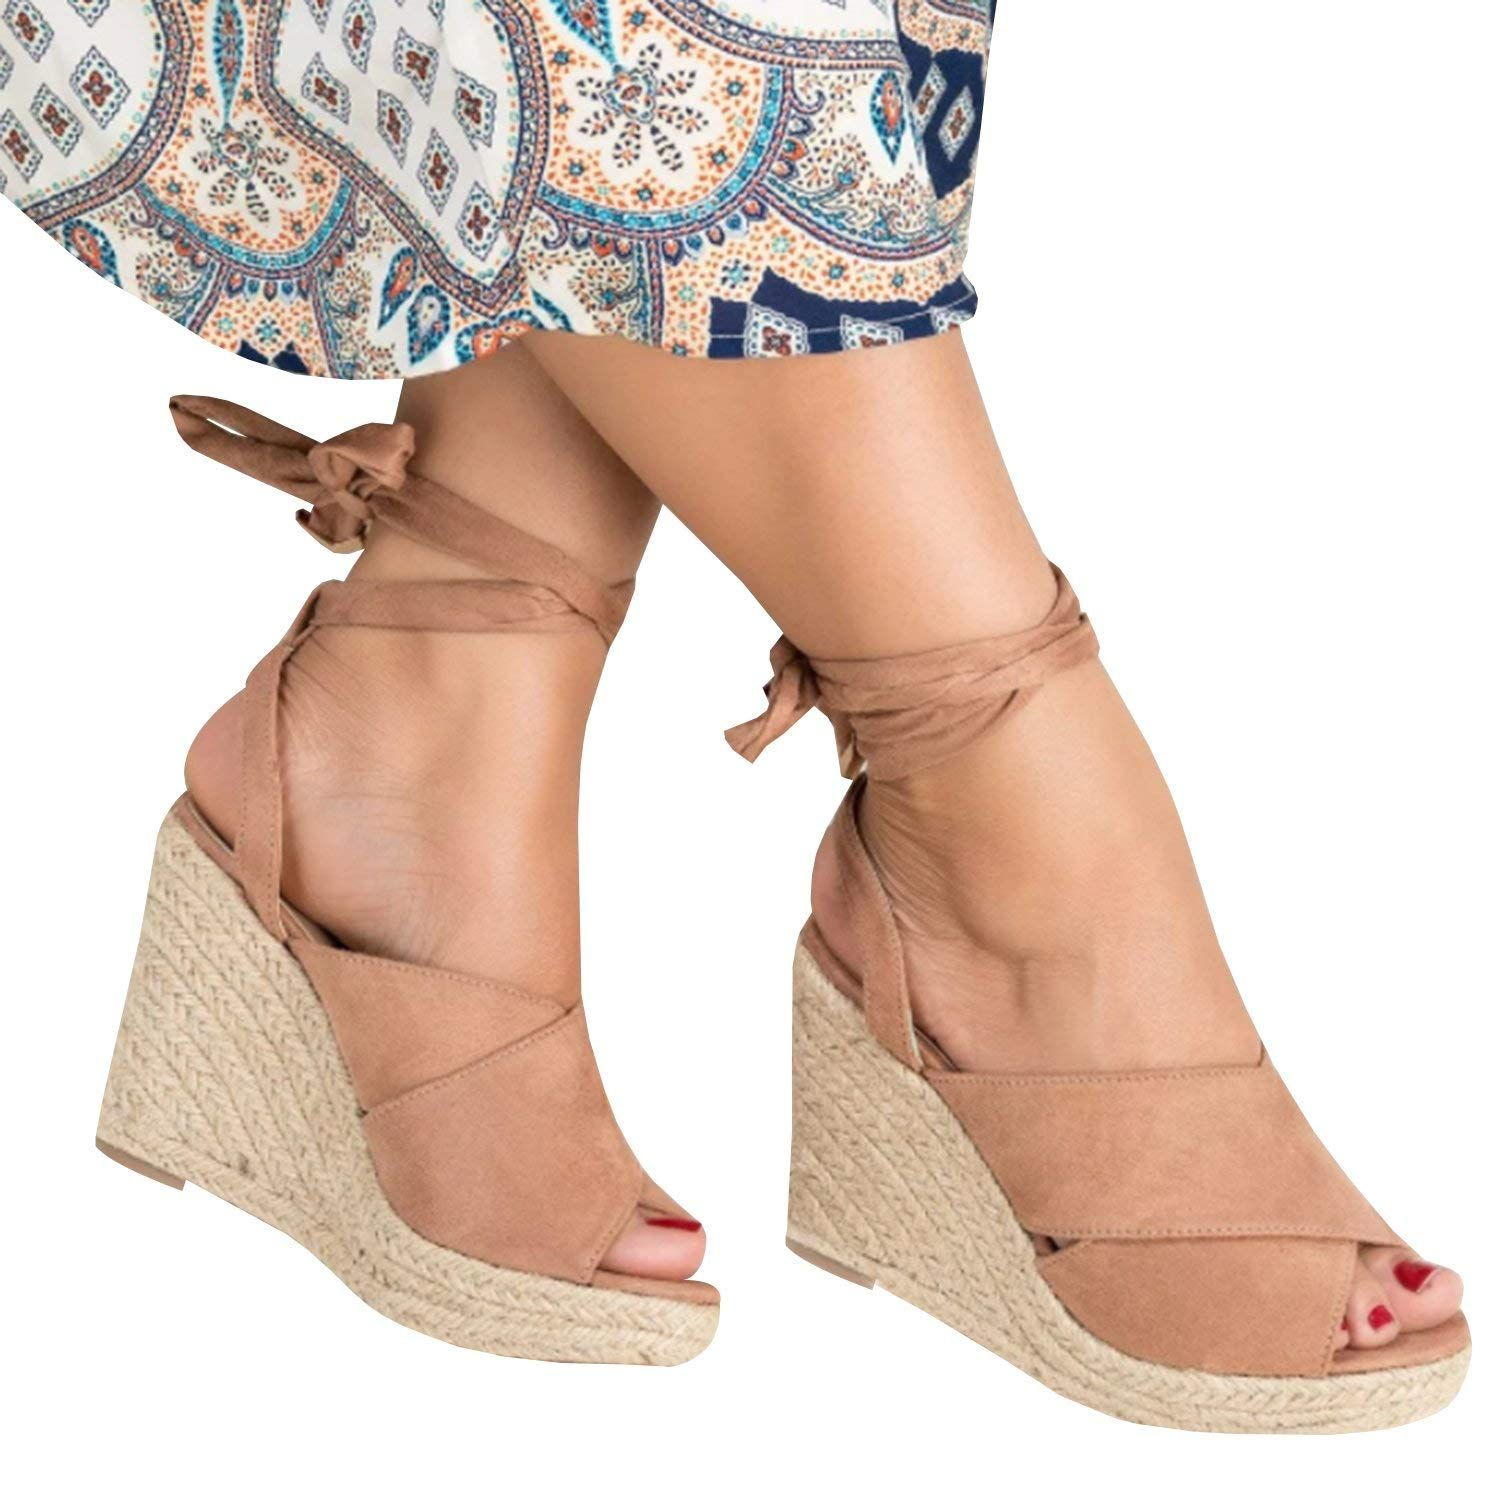 c6604f05a7f LAICIGO Womens Espadrilles Wedge Sandals Lace up Ankle Strap Front Wrap Peep  Toe Strappy Platform Cute Shoes -- Wonderful of you to drop by to visit our  ...